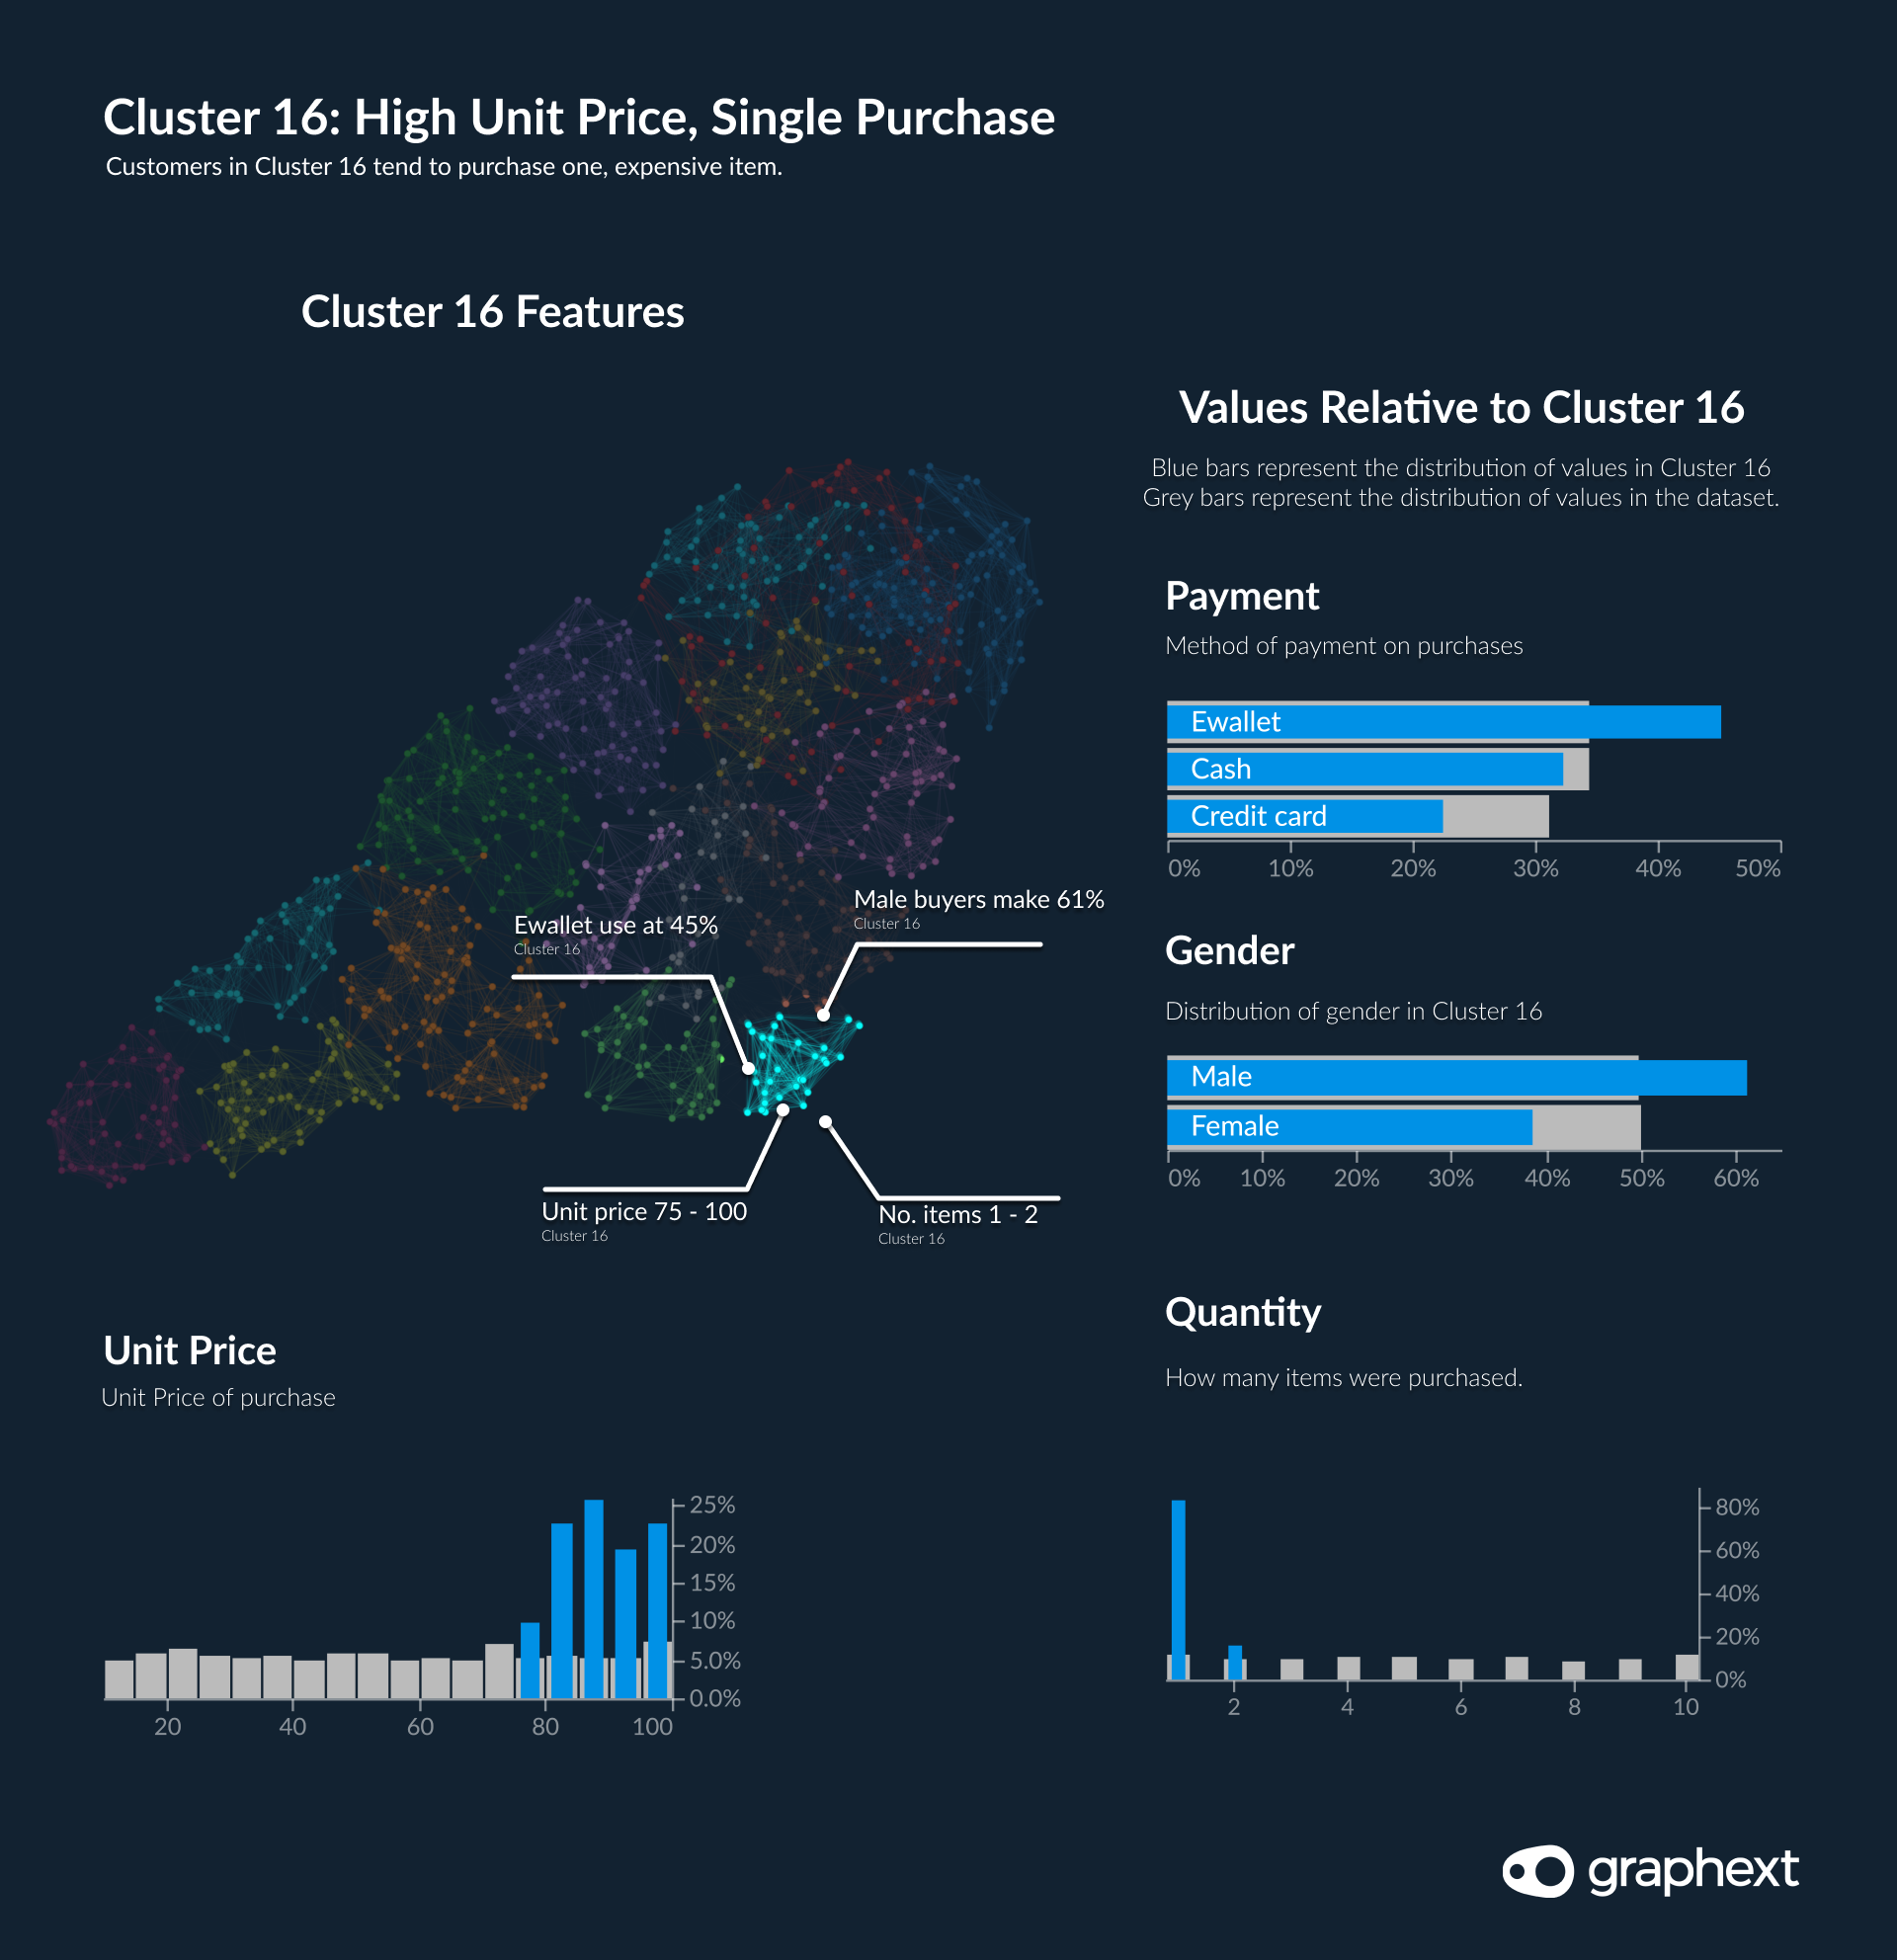 Data highlighting that customers in cluster 16 tend to purchase one, expensive item.